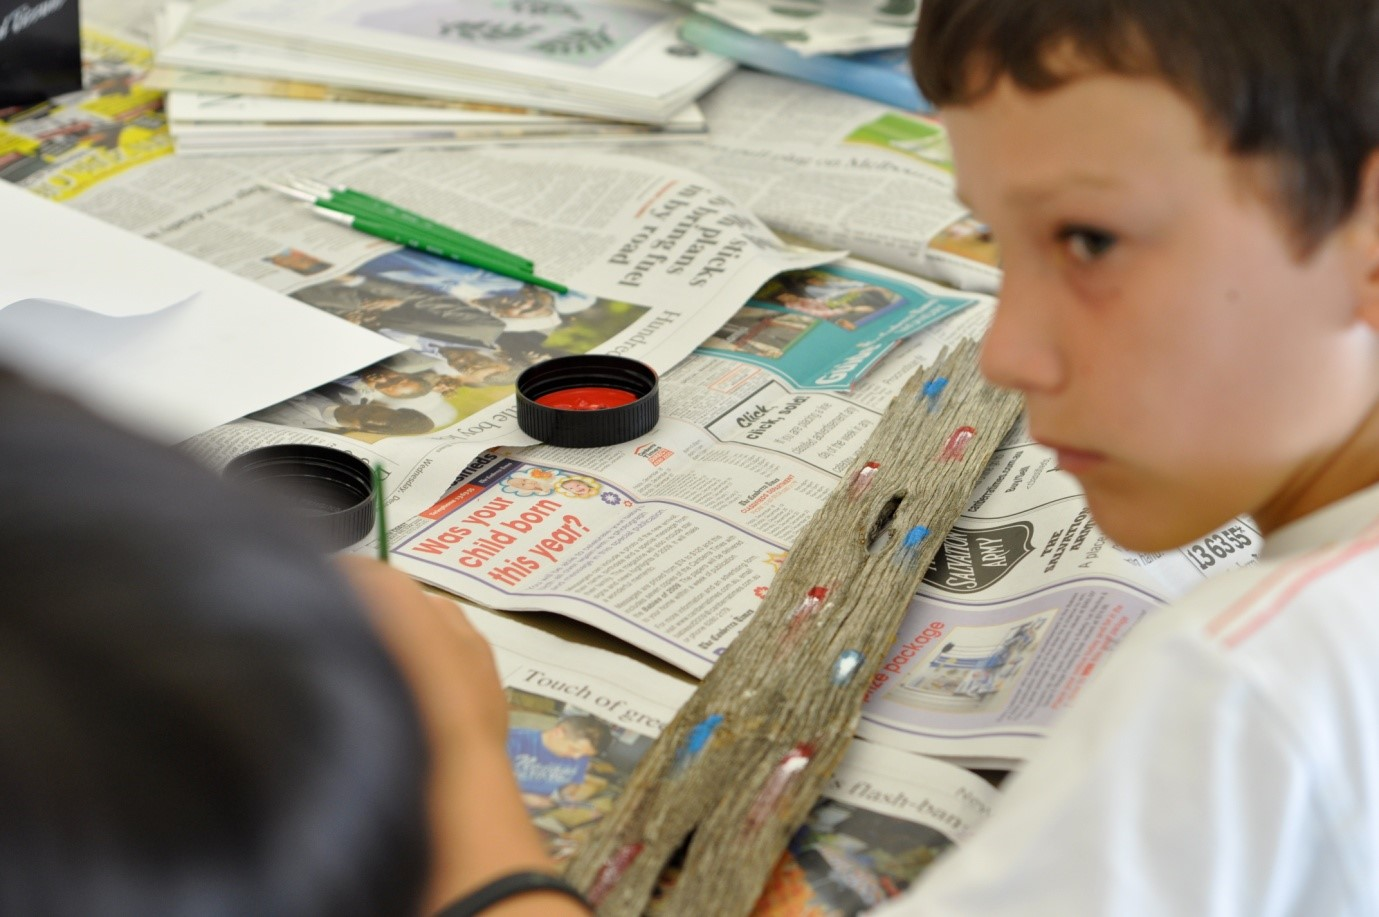 photo of young boy painting on a piece of drift wood